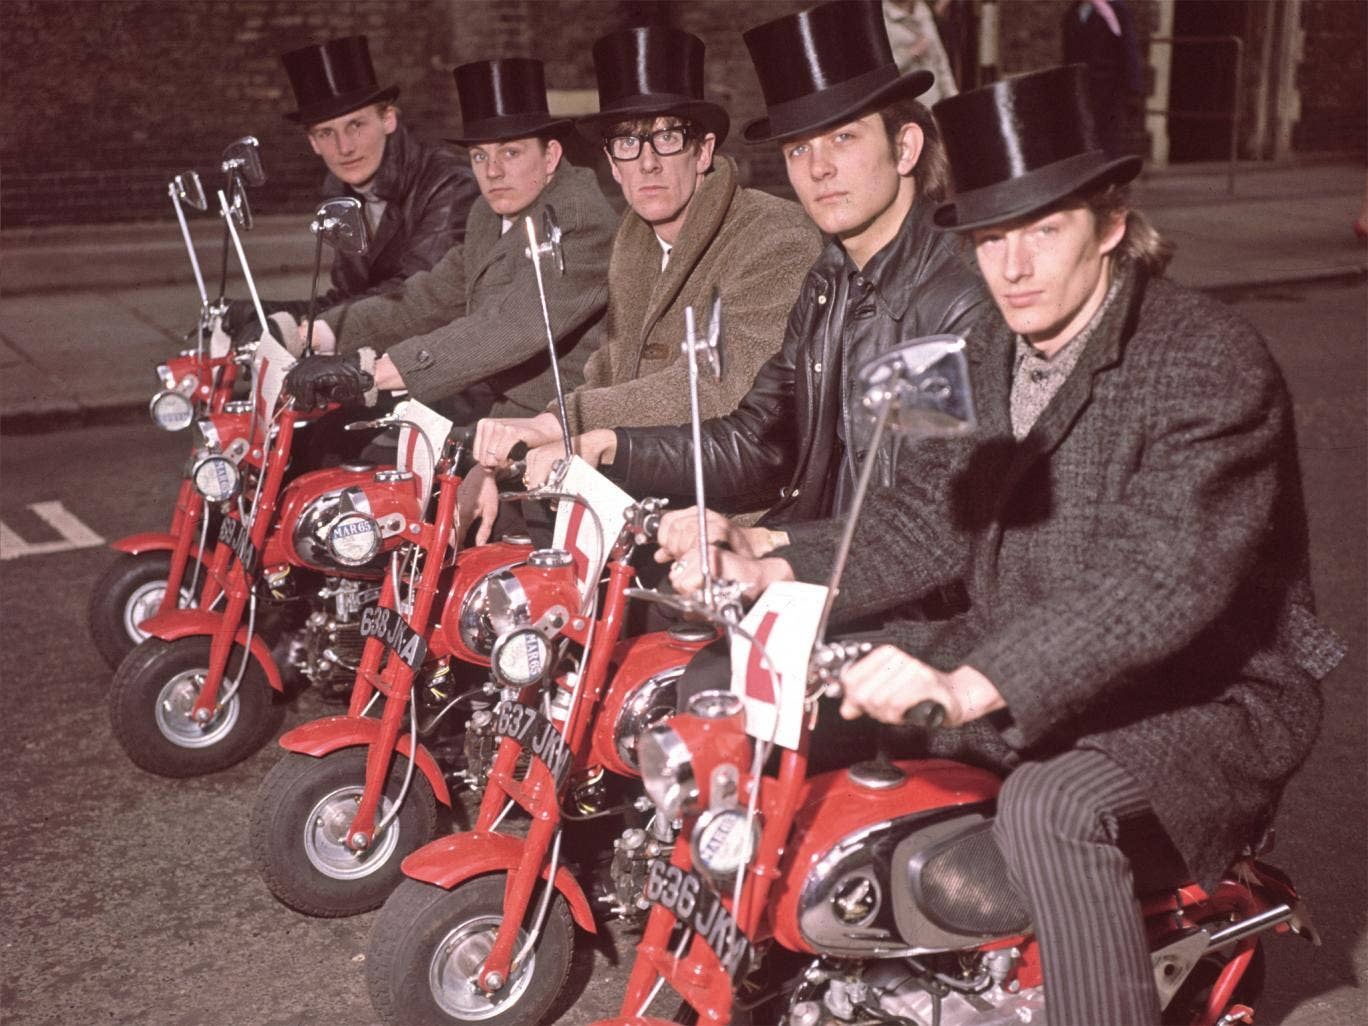 Jackie Lomax, nearest the camera, with The Undertakers in 1964